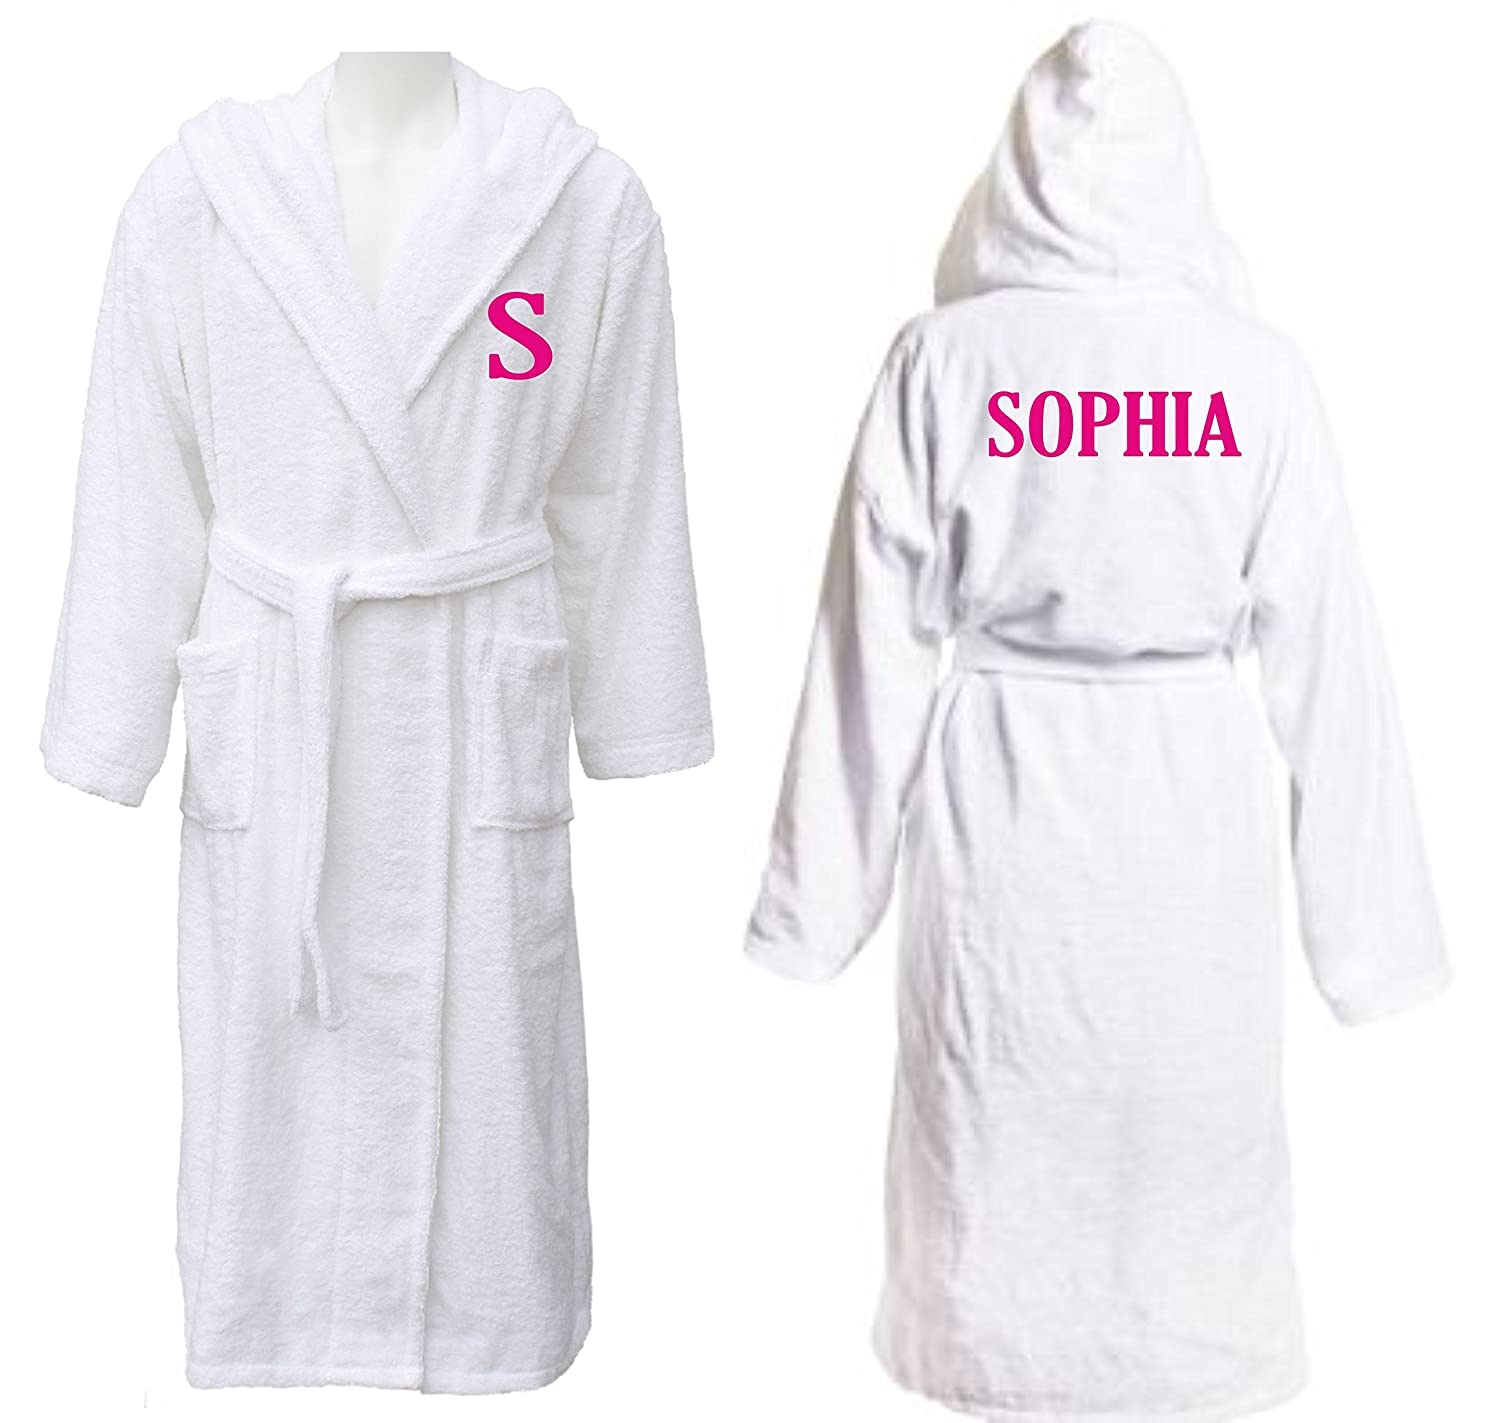 Big Babies Boutique Personalised Embroidered Girls White Hooded Bath Robe with Name and Initial